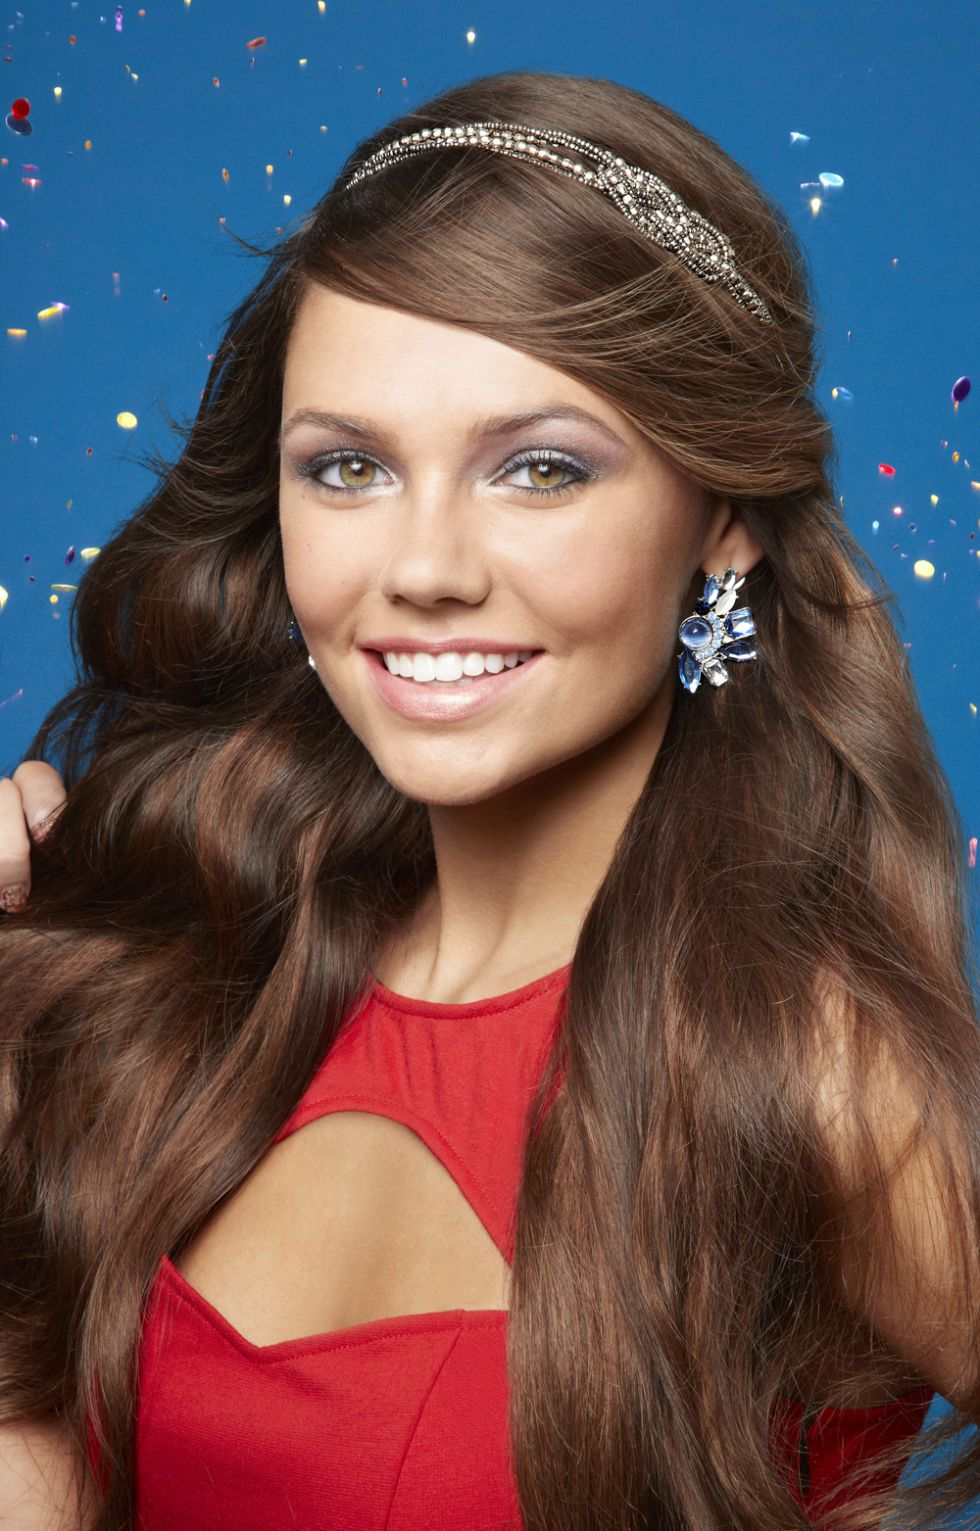 hair-ideas-style-what-to-wear-newyearseve-nye-holiday-outfits-winter-headband-earrings.jpg